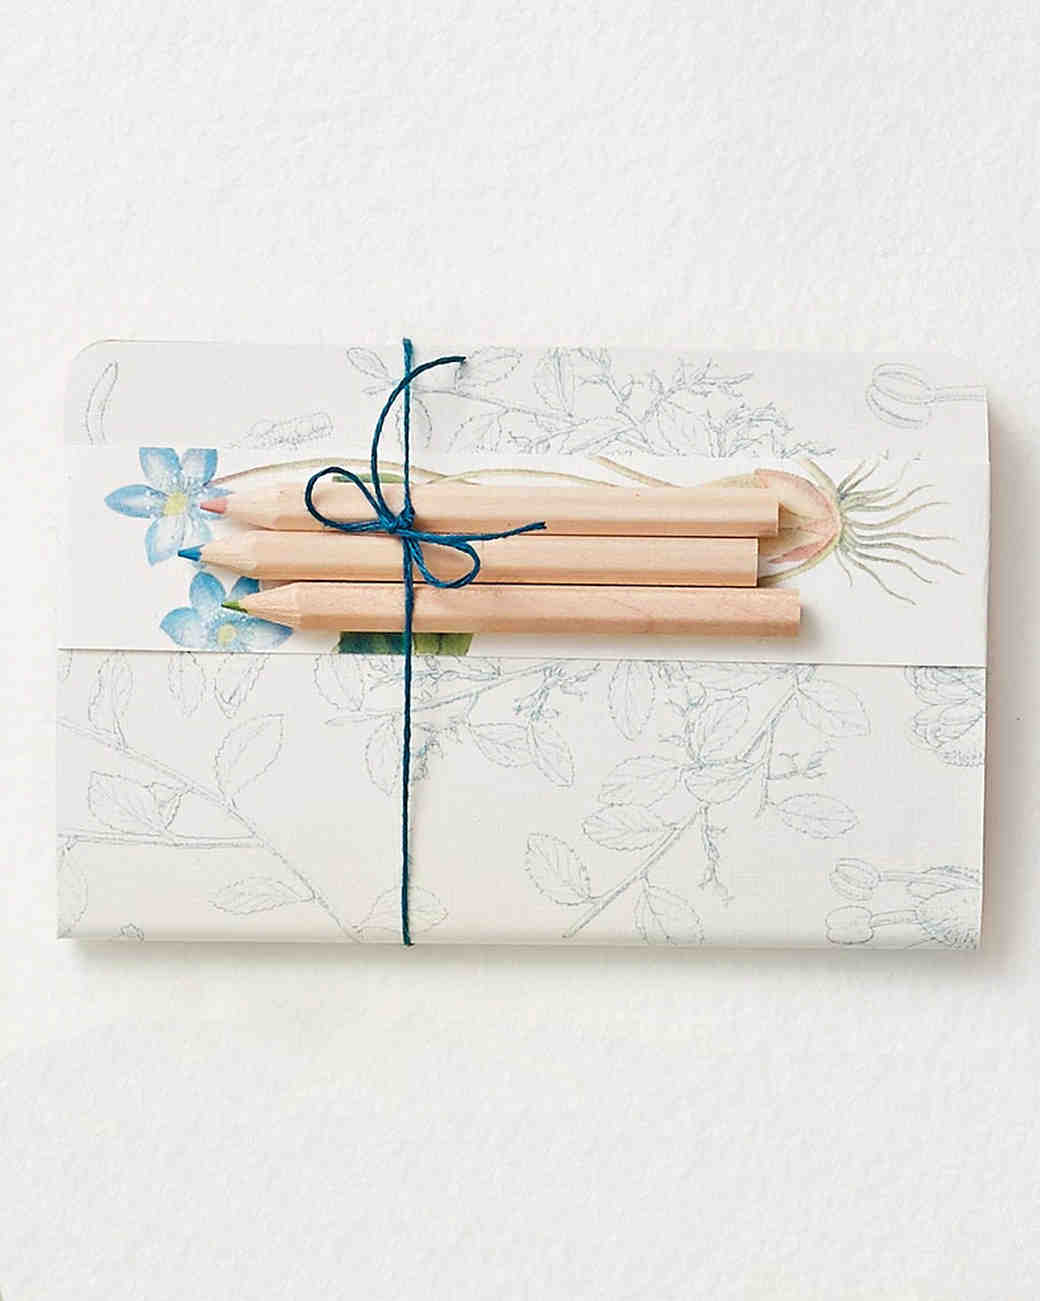 party-favors-patterned-paper-and-string-journal-pencils-187-d112911.jpg